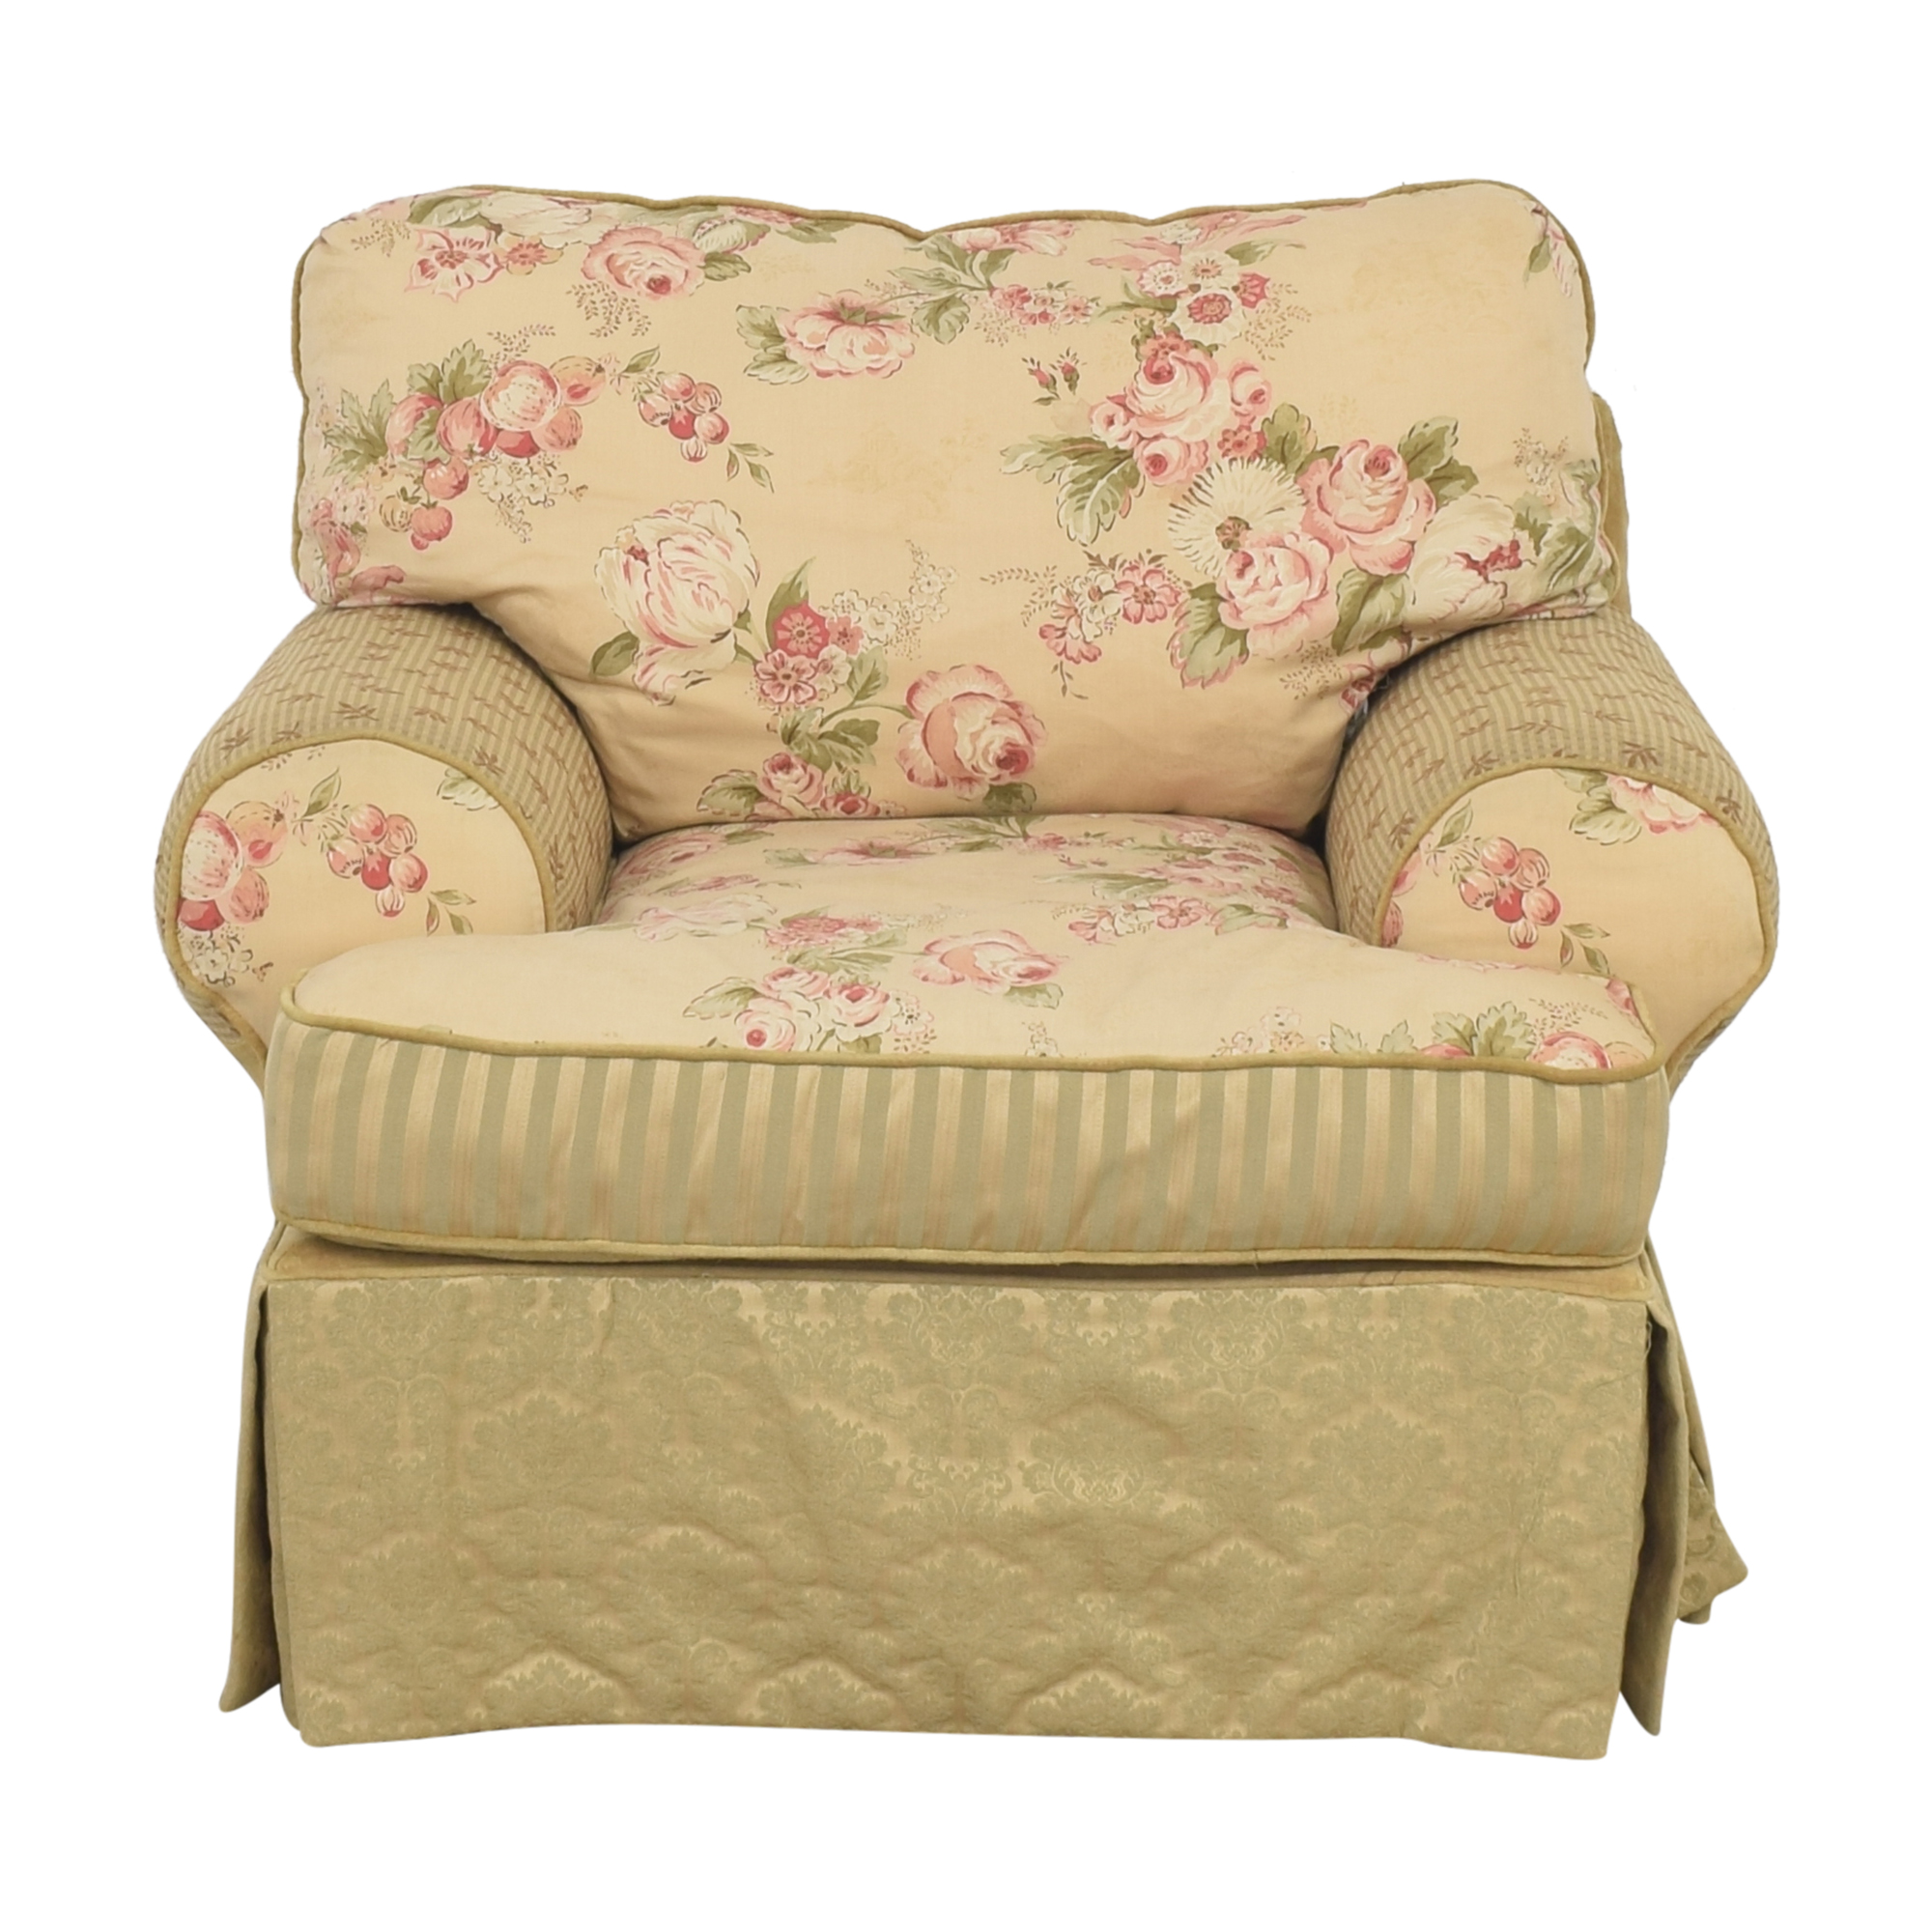 Domain Home Domain Home Floral and Stripe Accent Chair with Ottoman pa